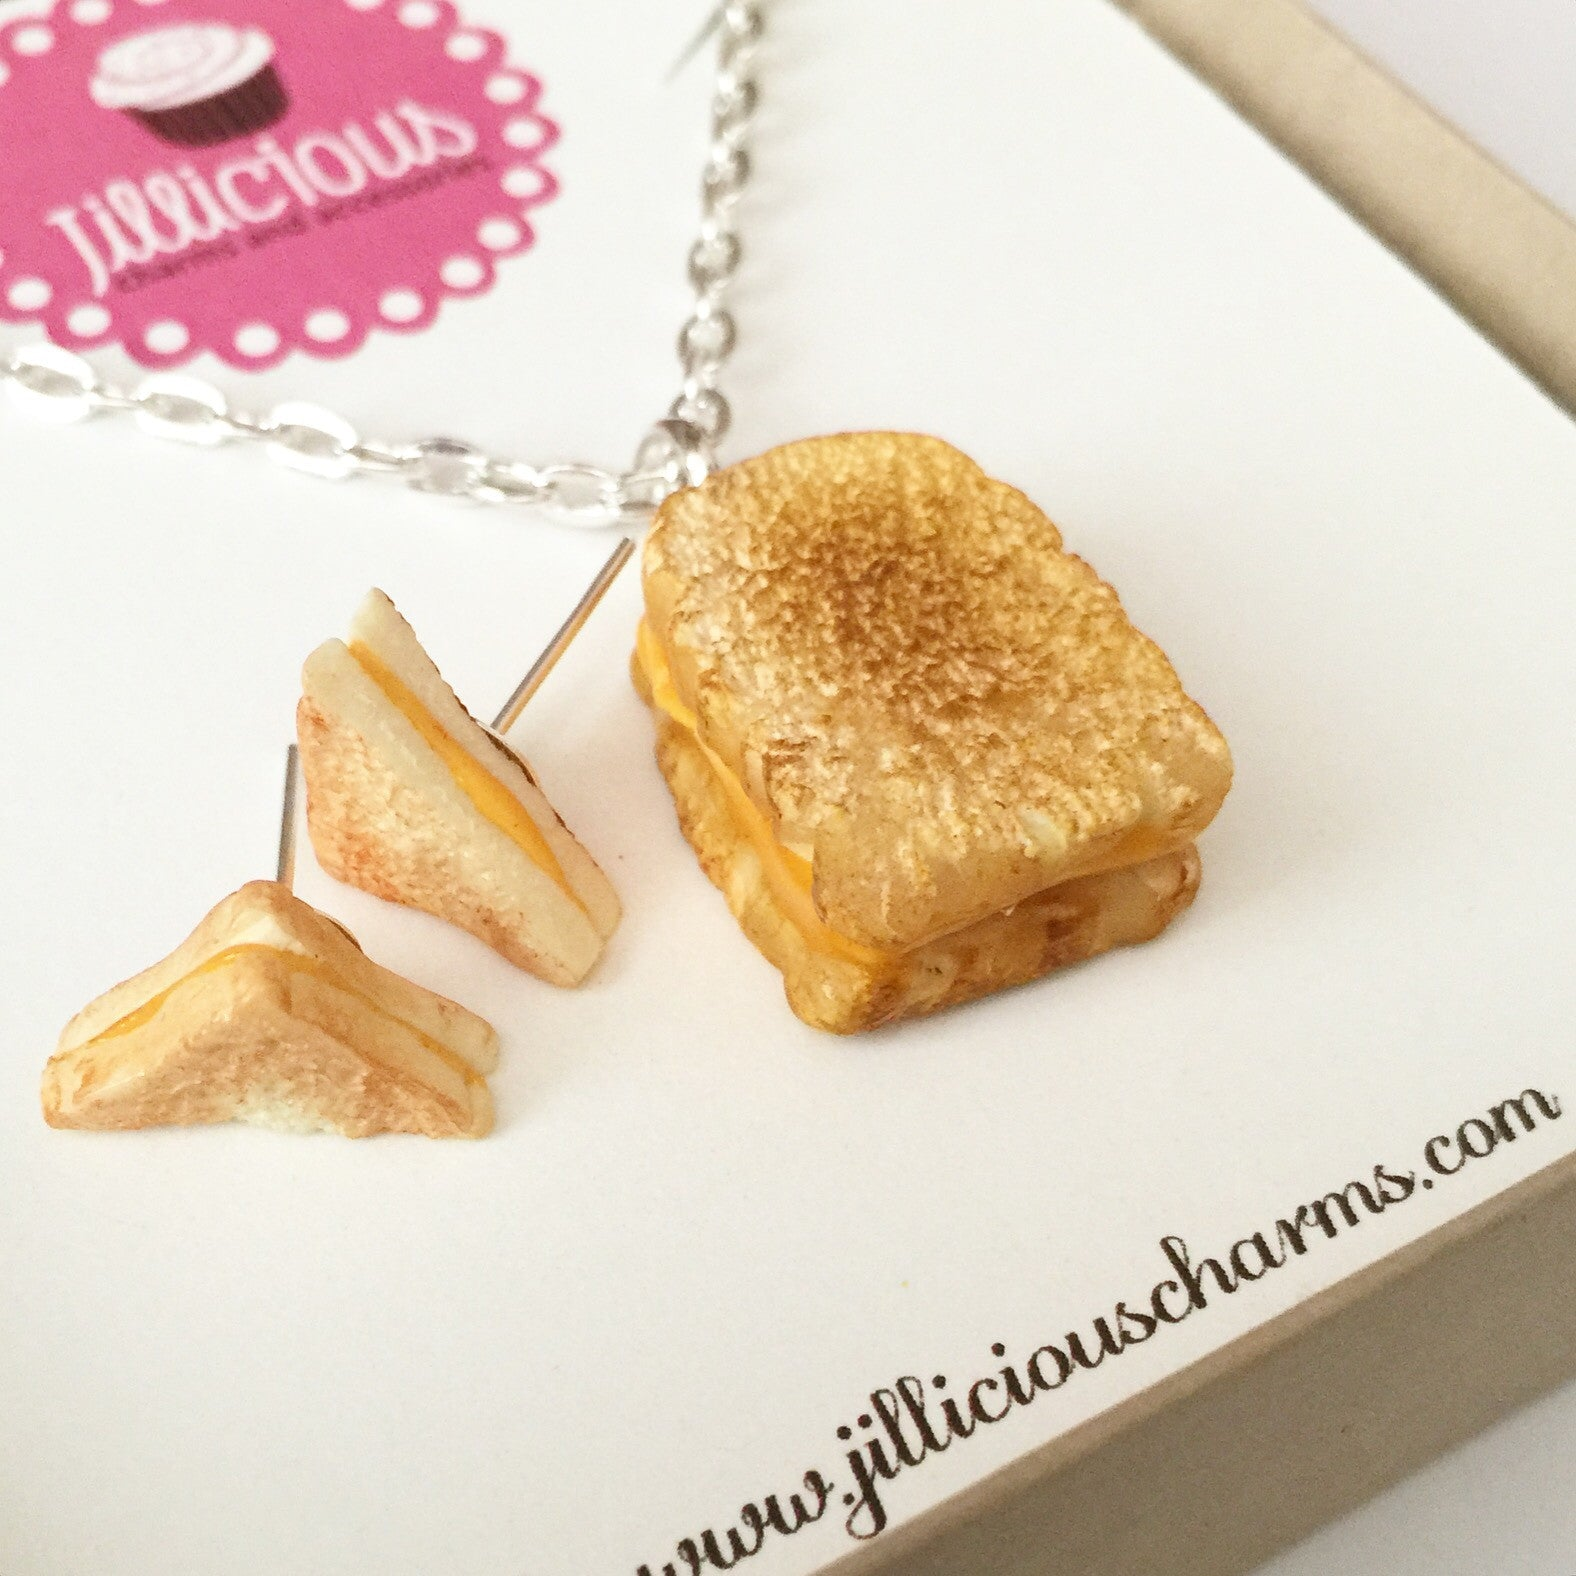 grilled cheese sandwich necklace - Jillicious charms and accessories - 8